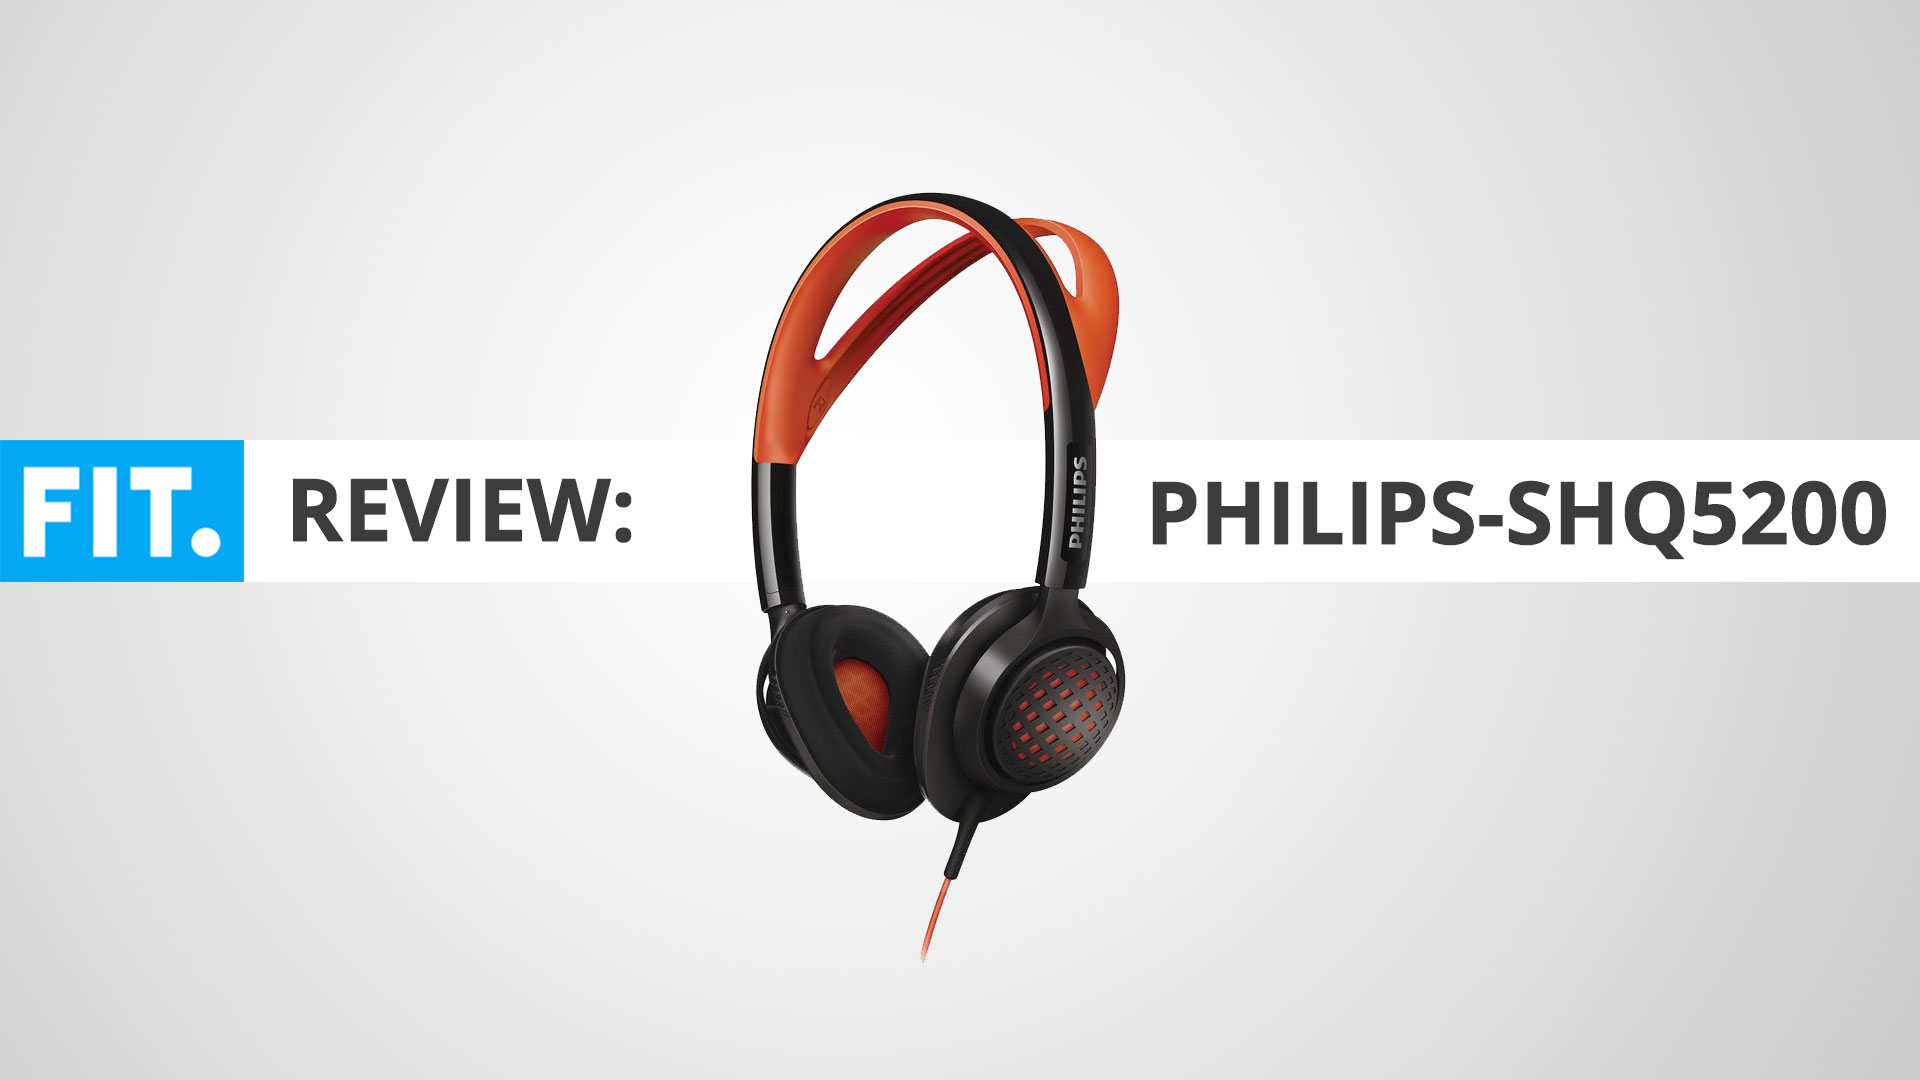 fit-review-philips-shq5200